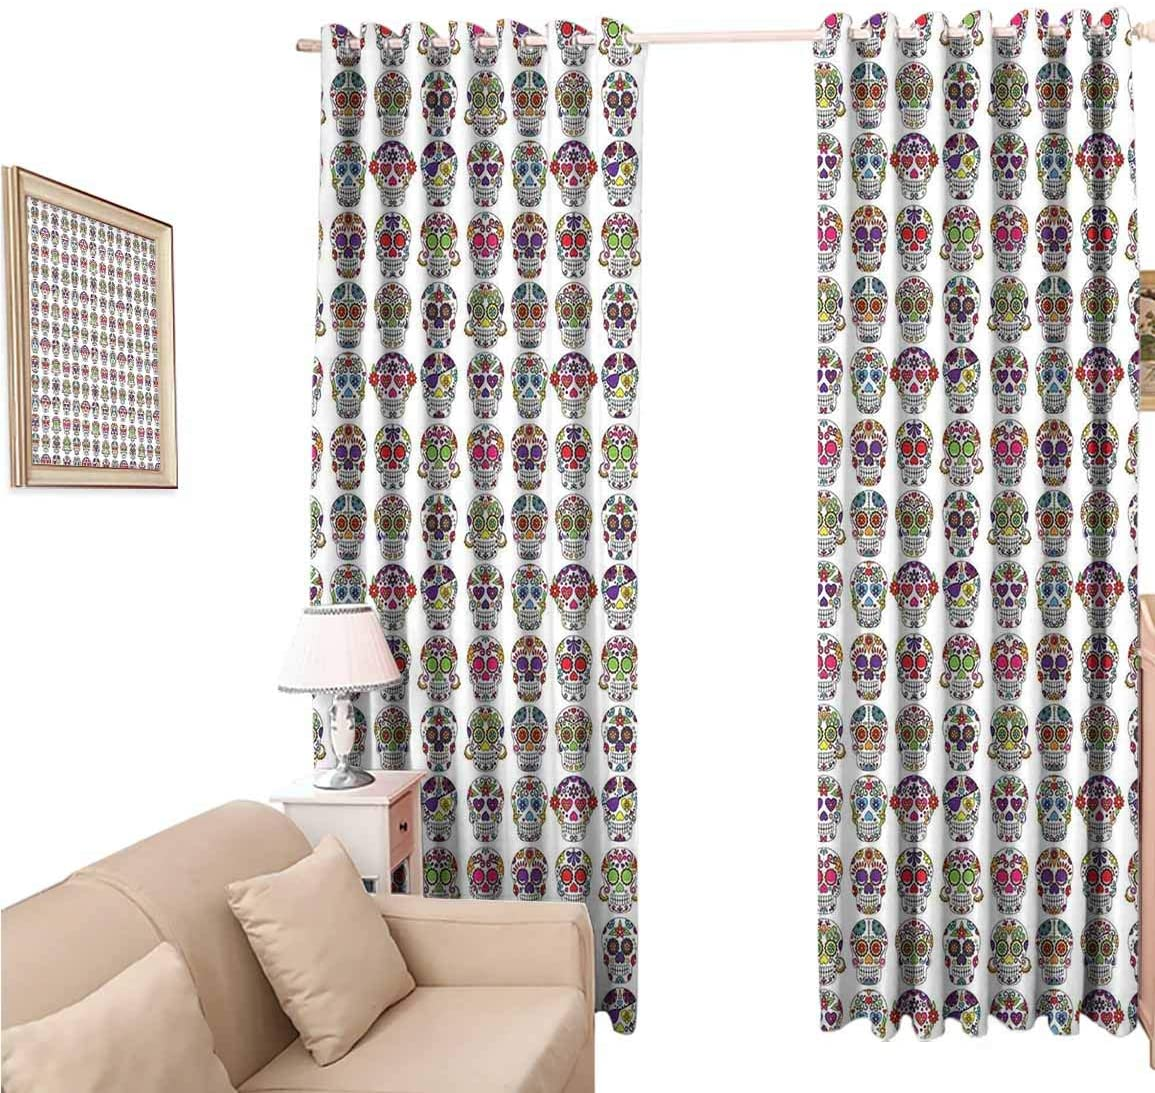 Blackout Curtains, Skullsations Day of The Dead Colorful Sugar Skulls with Flower s, Eclipse Curtain 108 Inches Long for Cottage, 120x108 inch